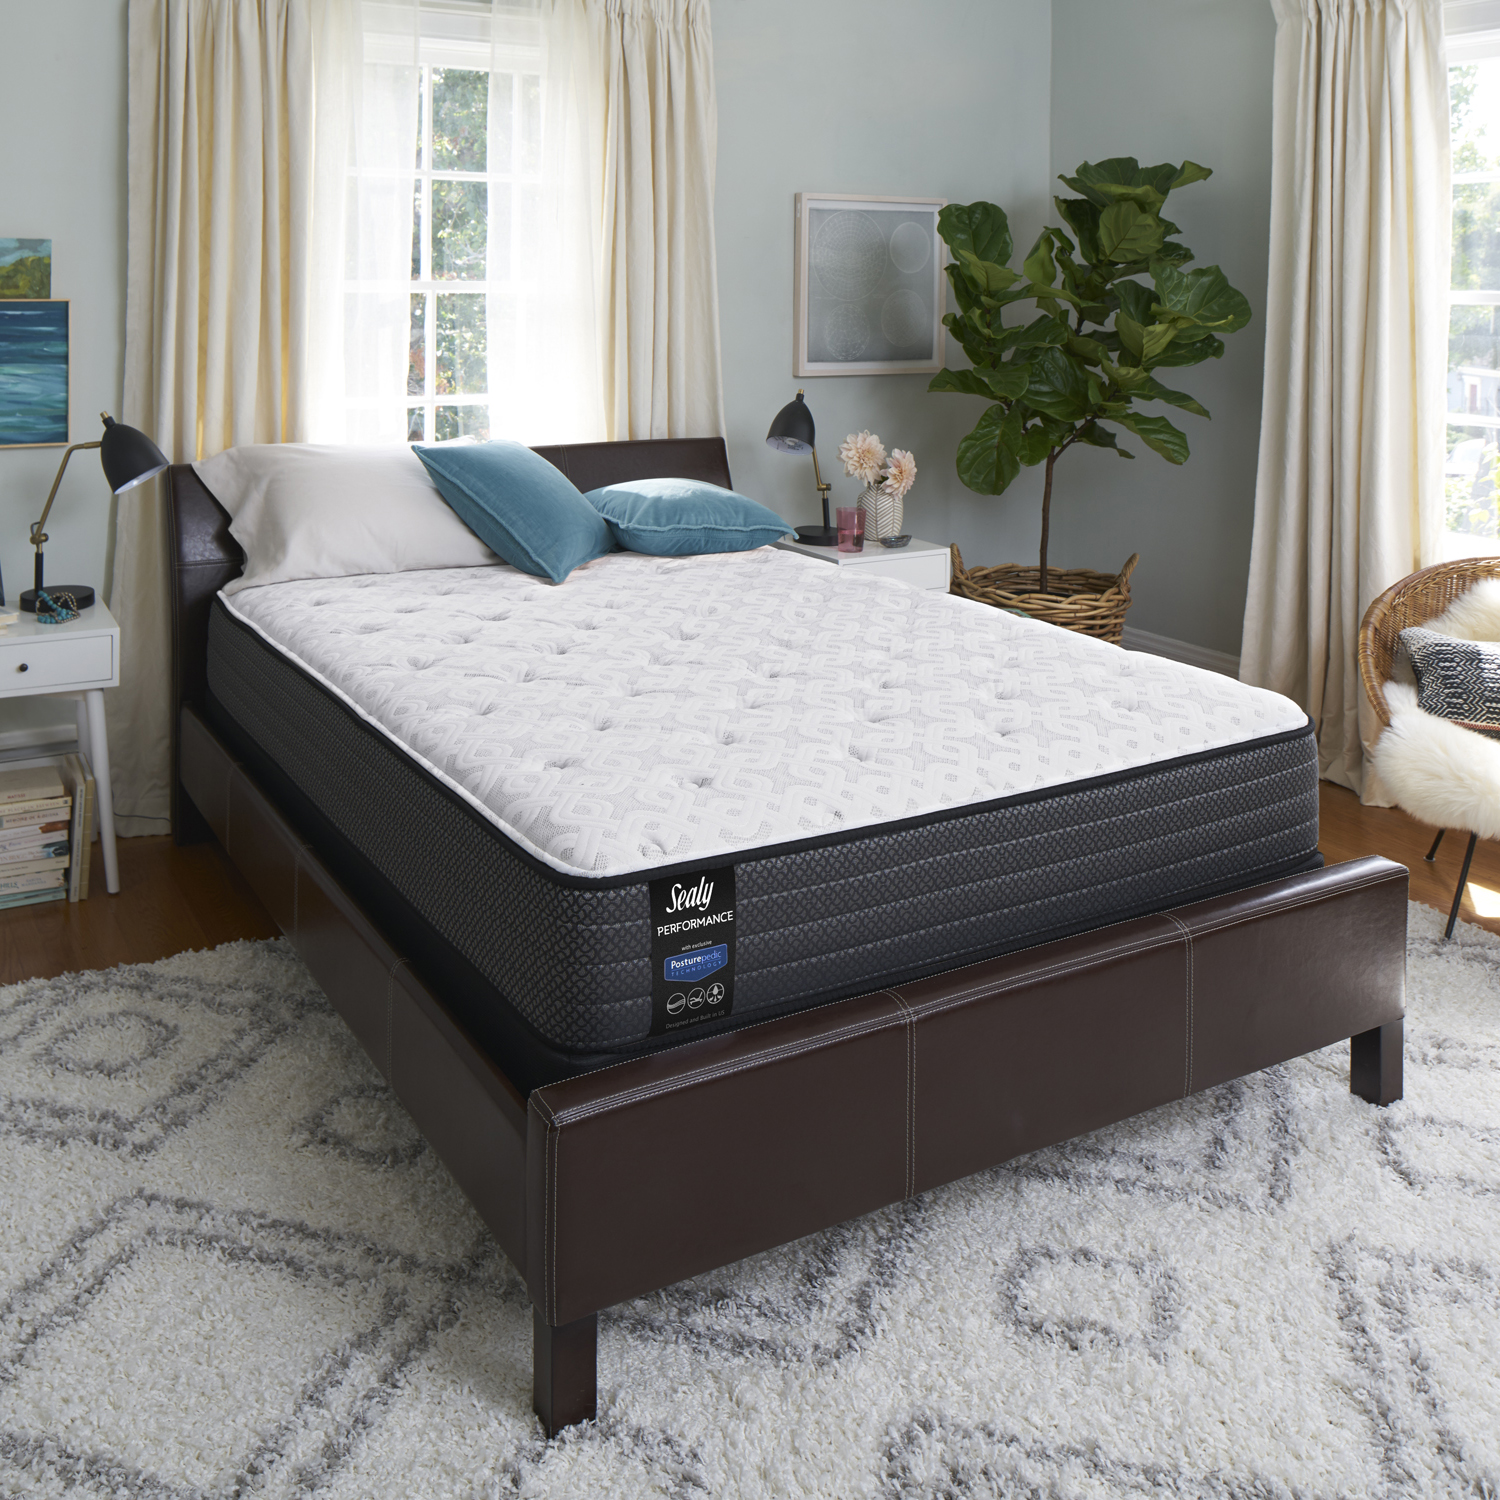 Sealy Response Performance 12 Inch Plush Tight Top Mattress